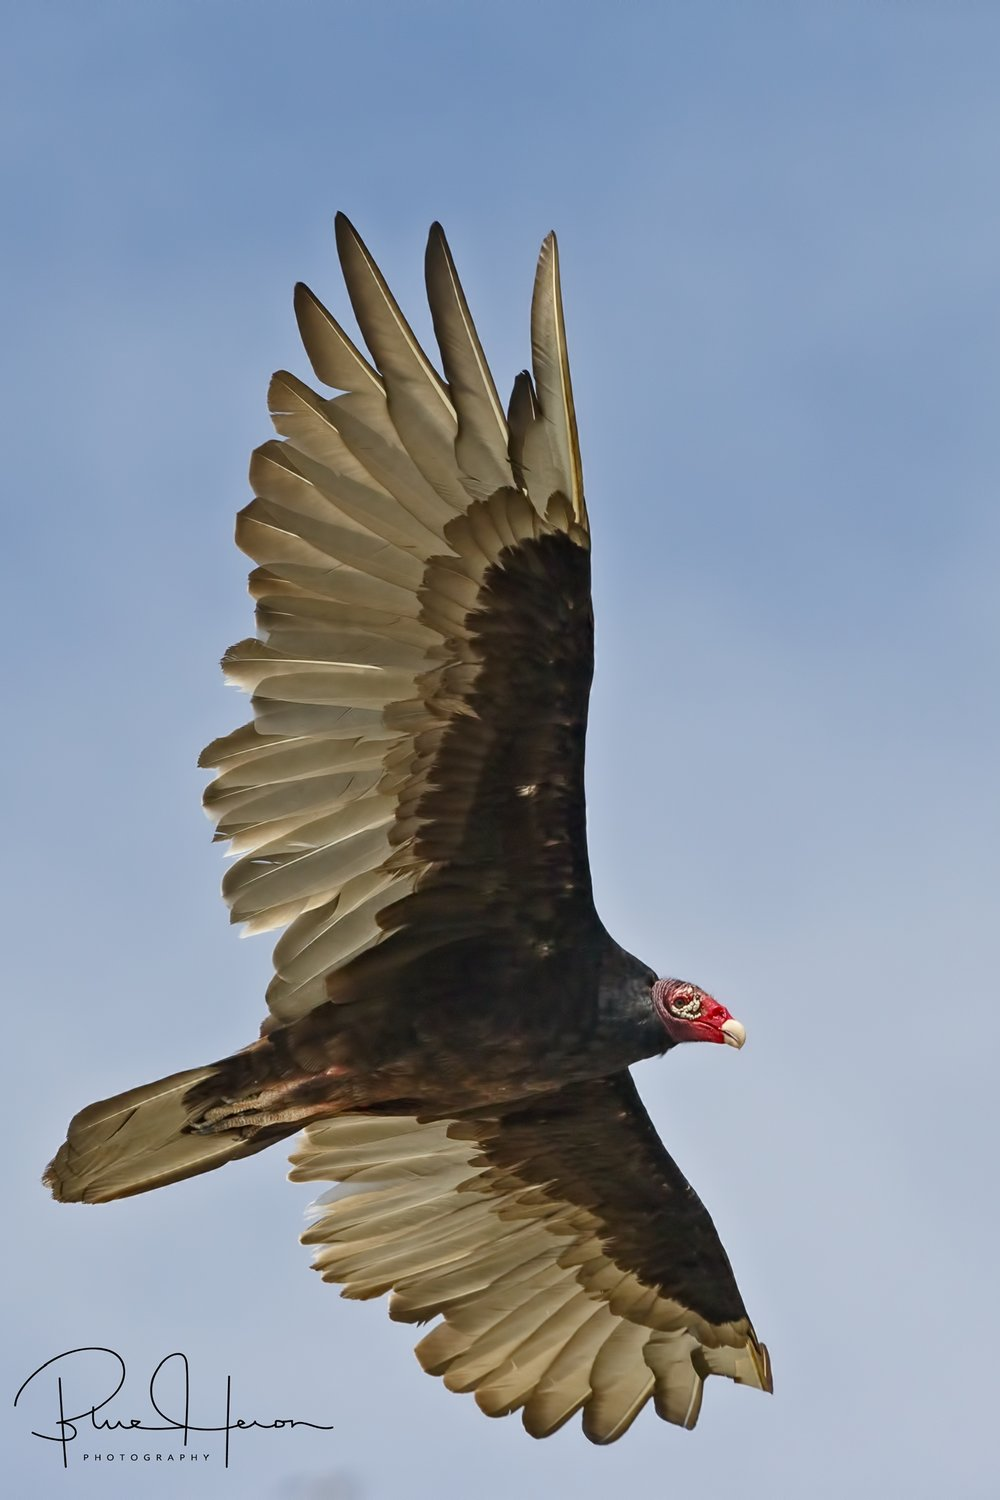 Mortality rates are high and the Turkey Vultures make regular visits to clean up the dead